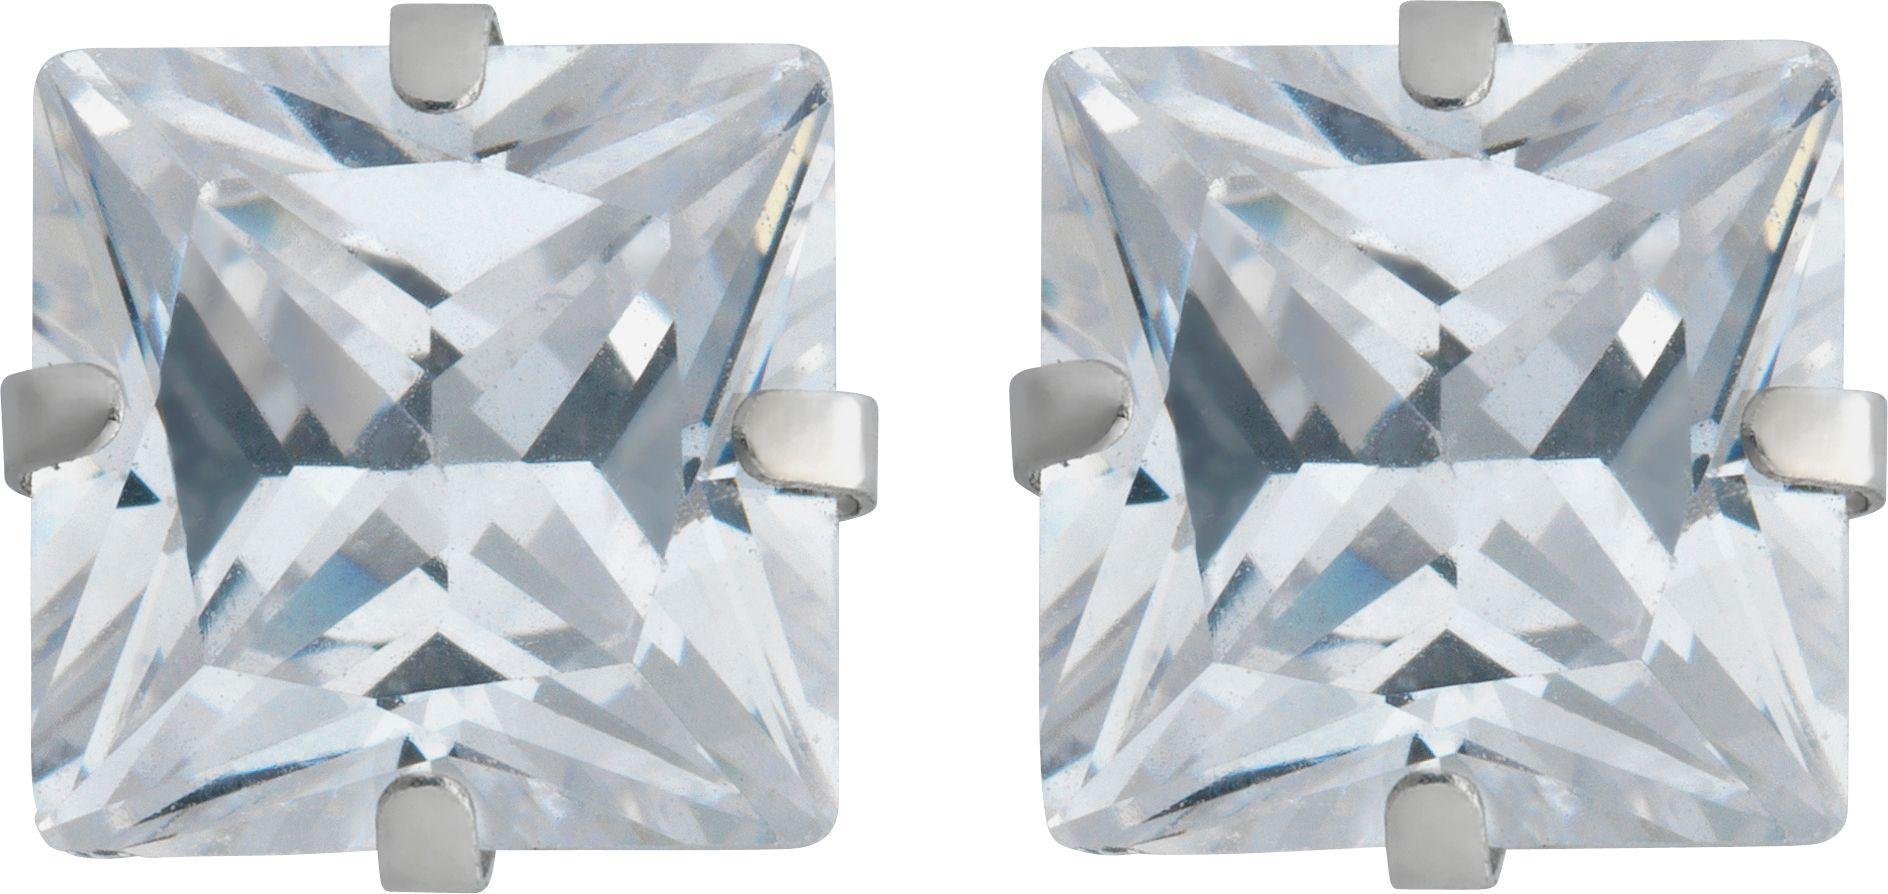 9 Carat White Gold - Square Cubic Zirconia - Stud Earrings.